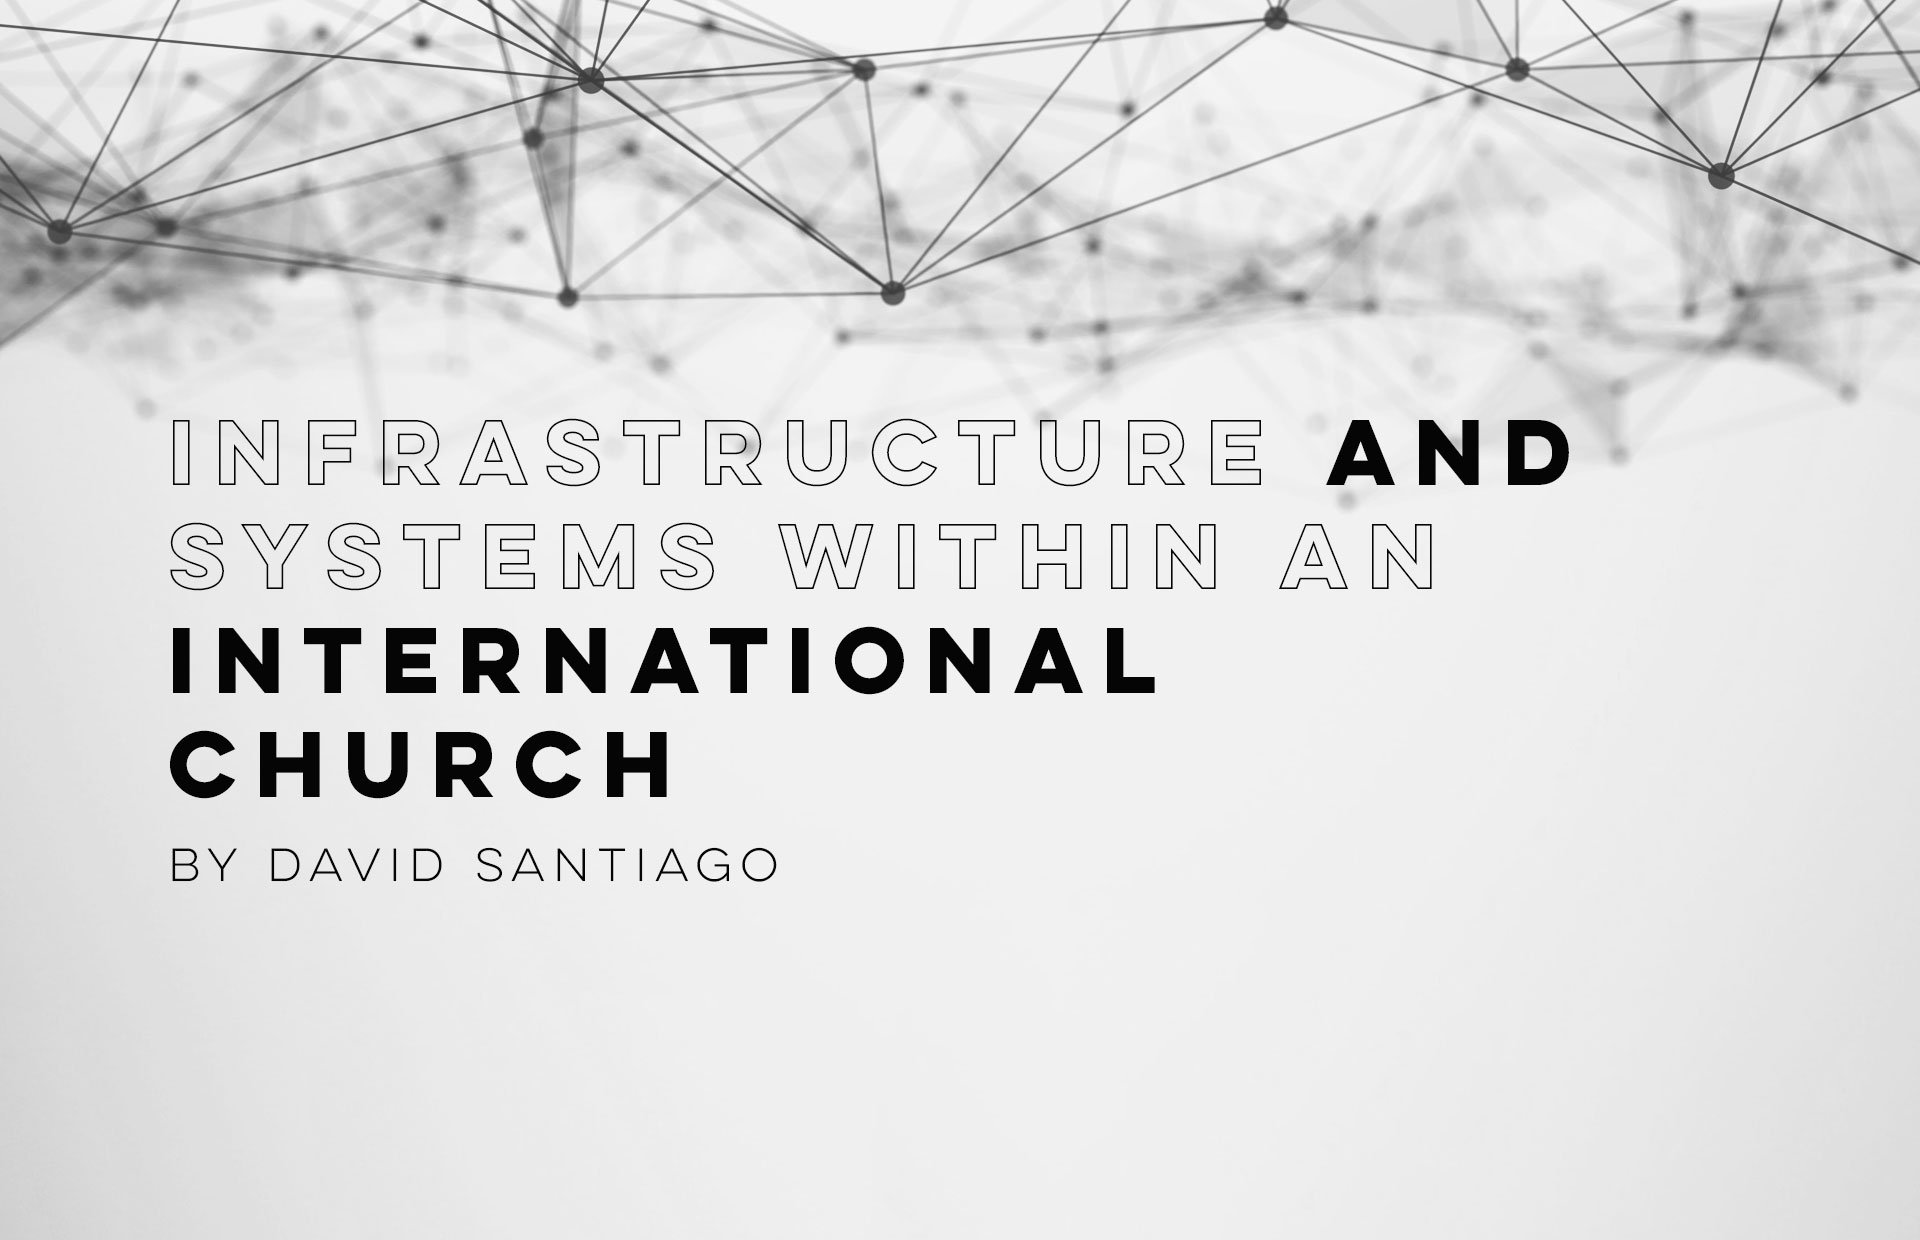 INFRASTRUCTURE AND SYSTEMS WITHIN AN INTERNATIONAL CHURCH